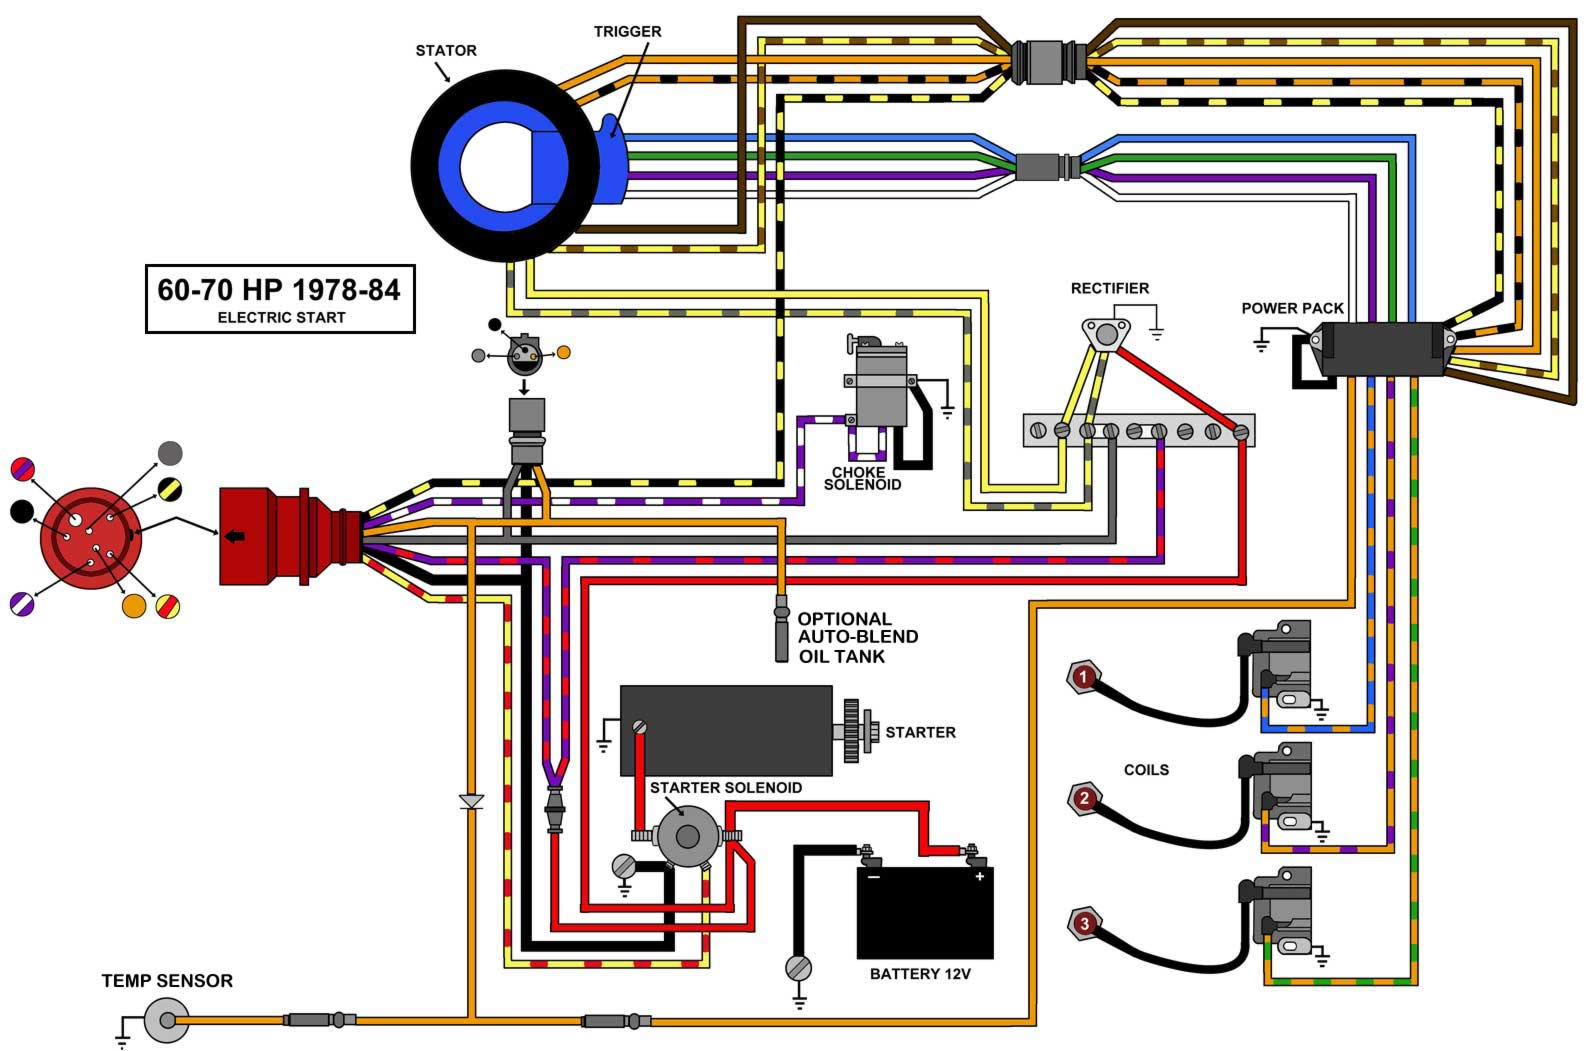 Evinrude Johnson Outboard Wiring Diagrams Mastertech Marine Ignition Diagram Ez Go St 40 60 70 Hp